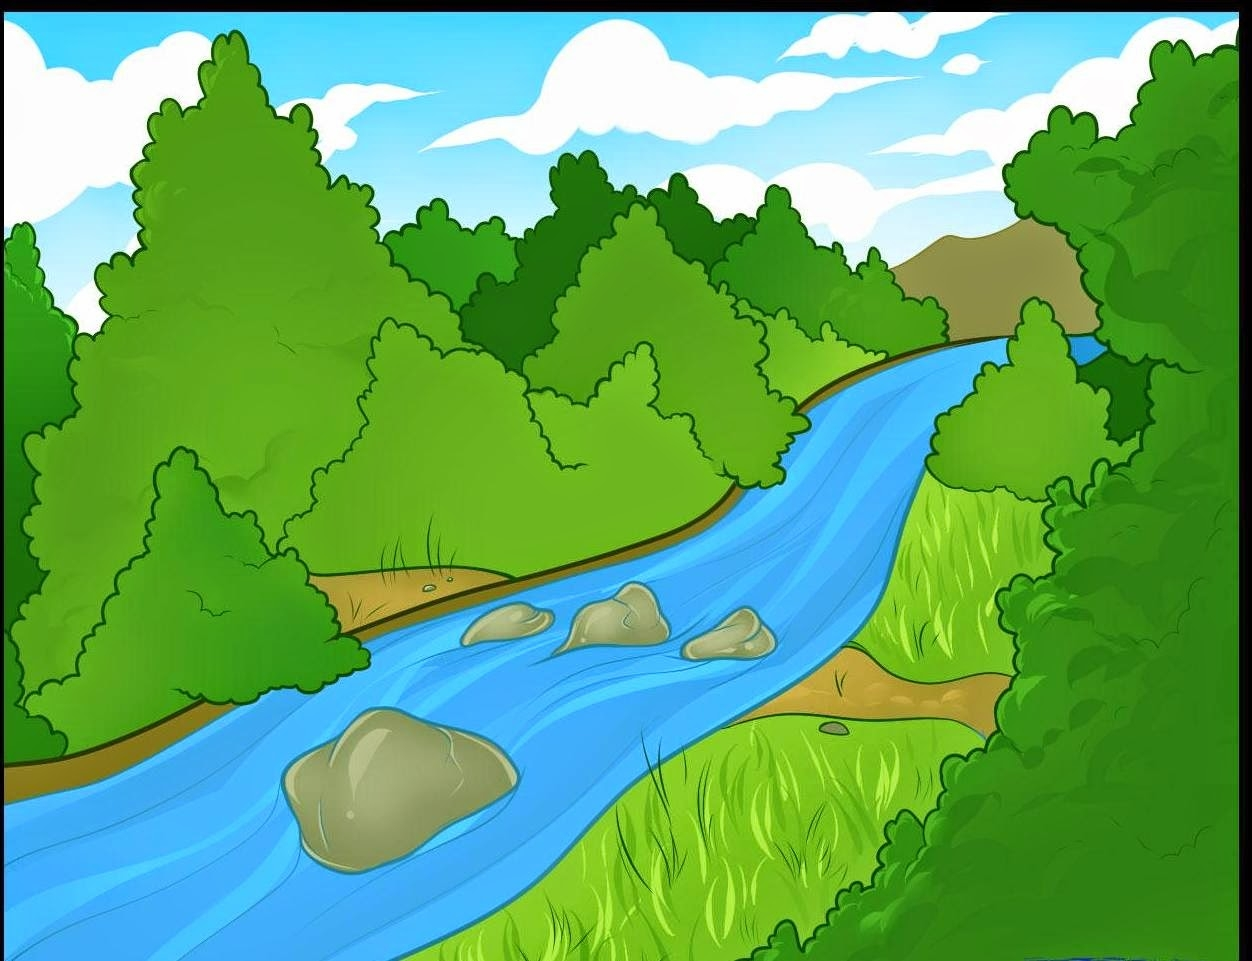 River clipart. Awesome design digital collection